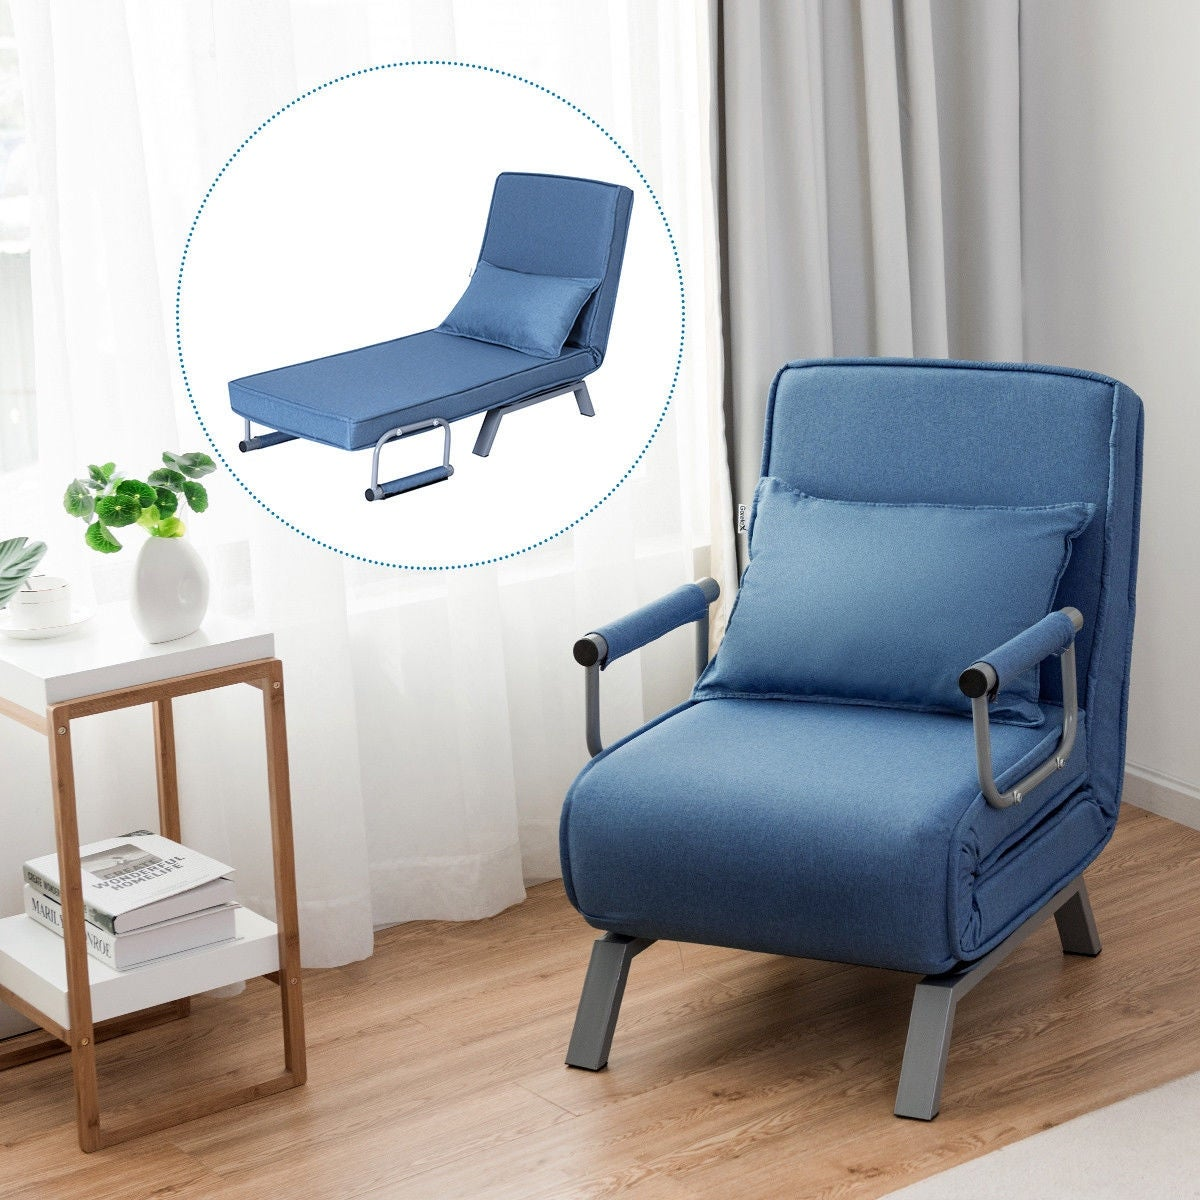 Costway Folding Sofa Bed Sleeper Convertible Armchair Lounge Couch 5 Position W Pillow